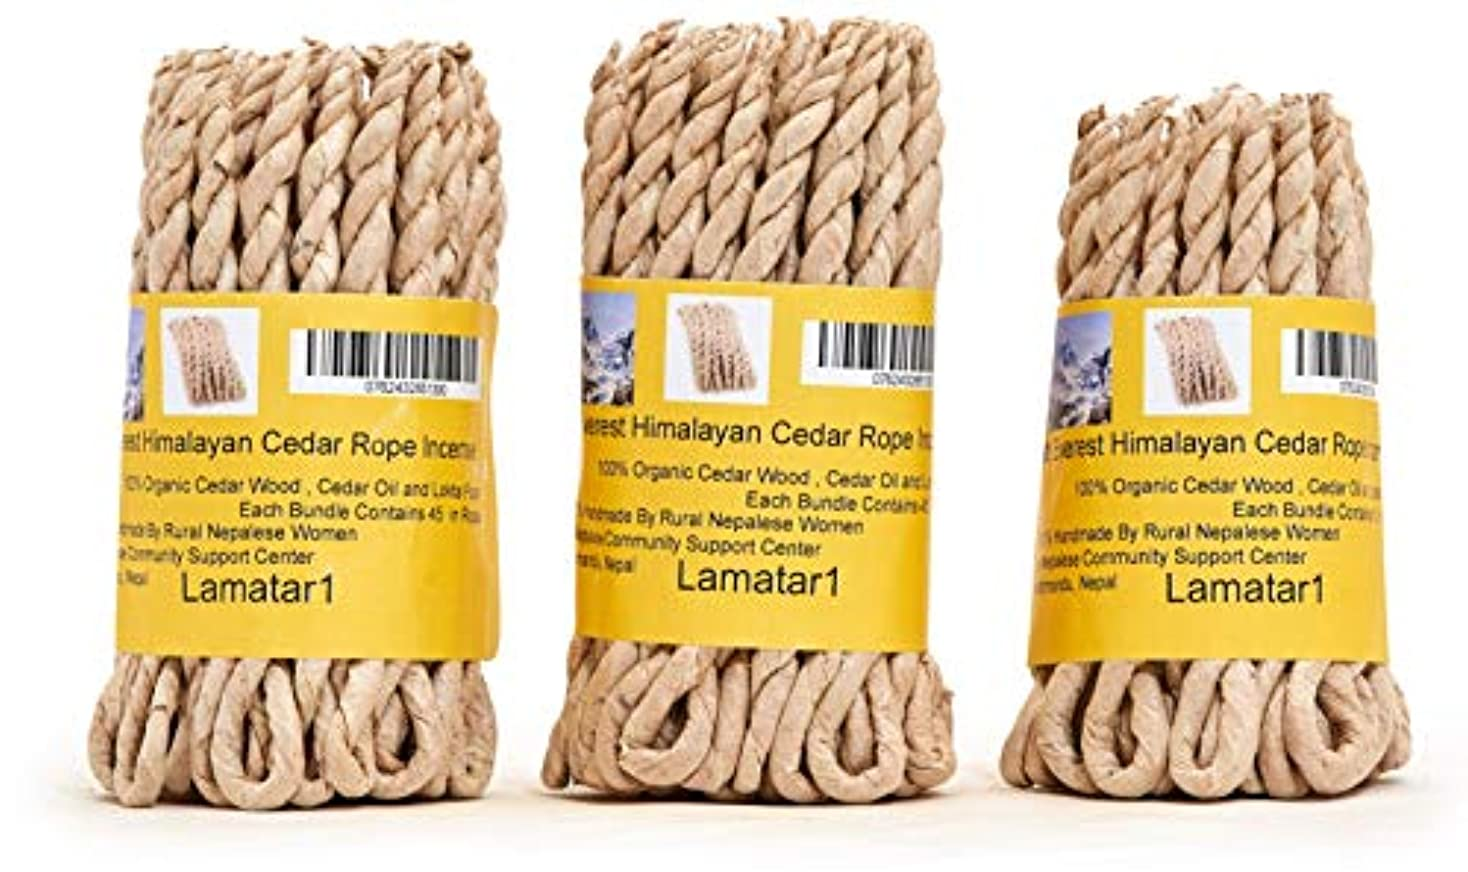 シード詳細に偽装するMT。Everest Himalyan Cedar Rope Incenseロールの3 x 45ロープ= 135ロープfounded by Buddhist Monk Dr。Umesh Lama 1981年に